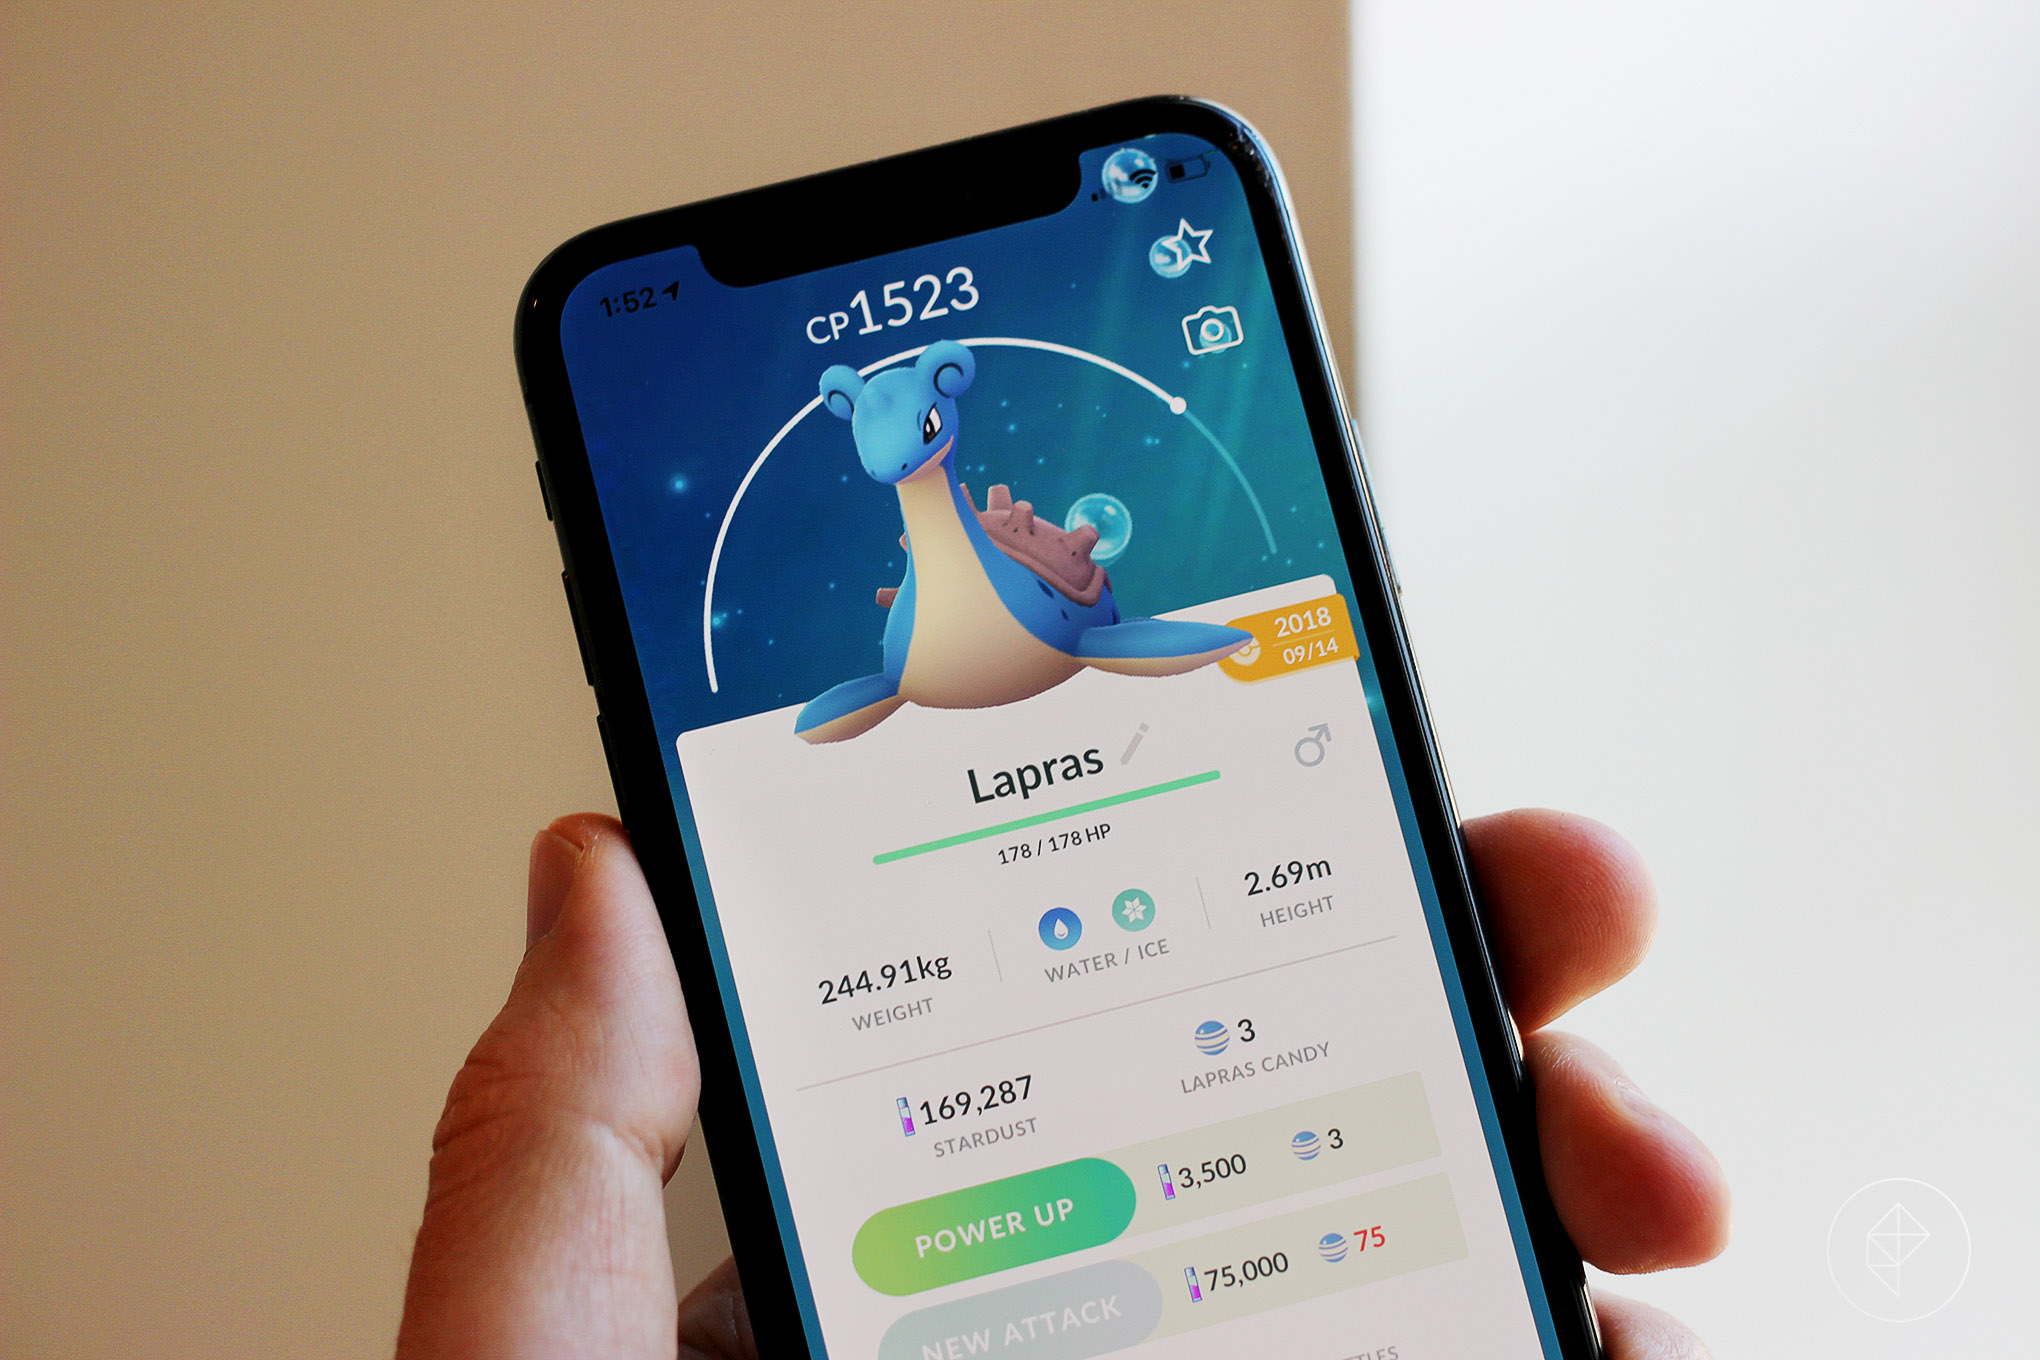 A hand holds up a phone screen with a Lapras stat screen from Pokémon Go